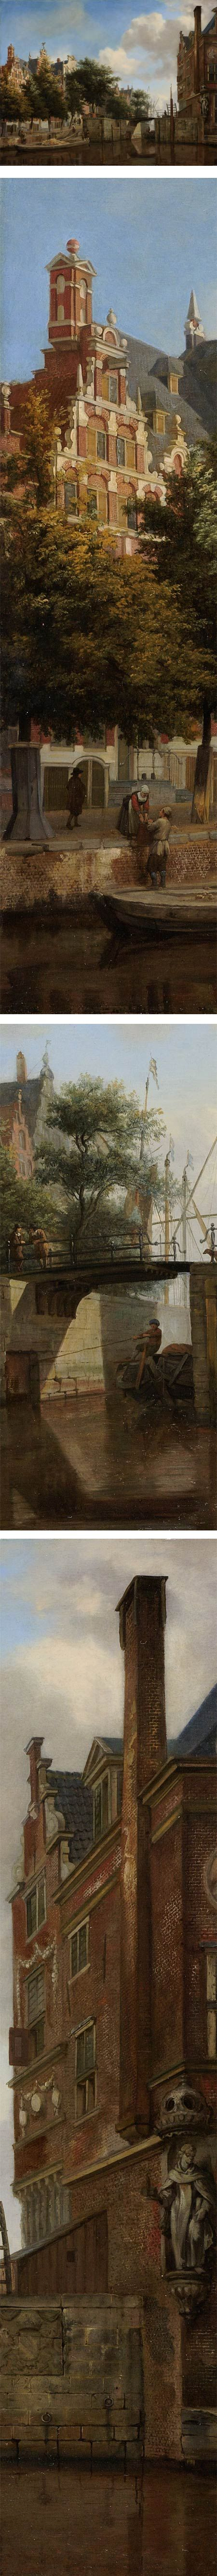 Eye Candy for Today: Canal scene by Jan van der Heyden